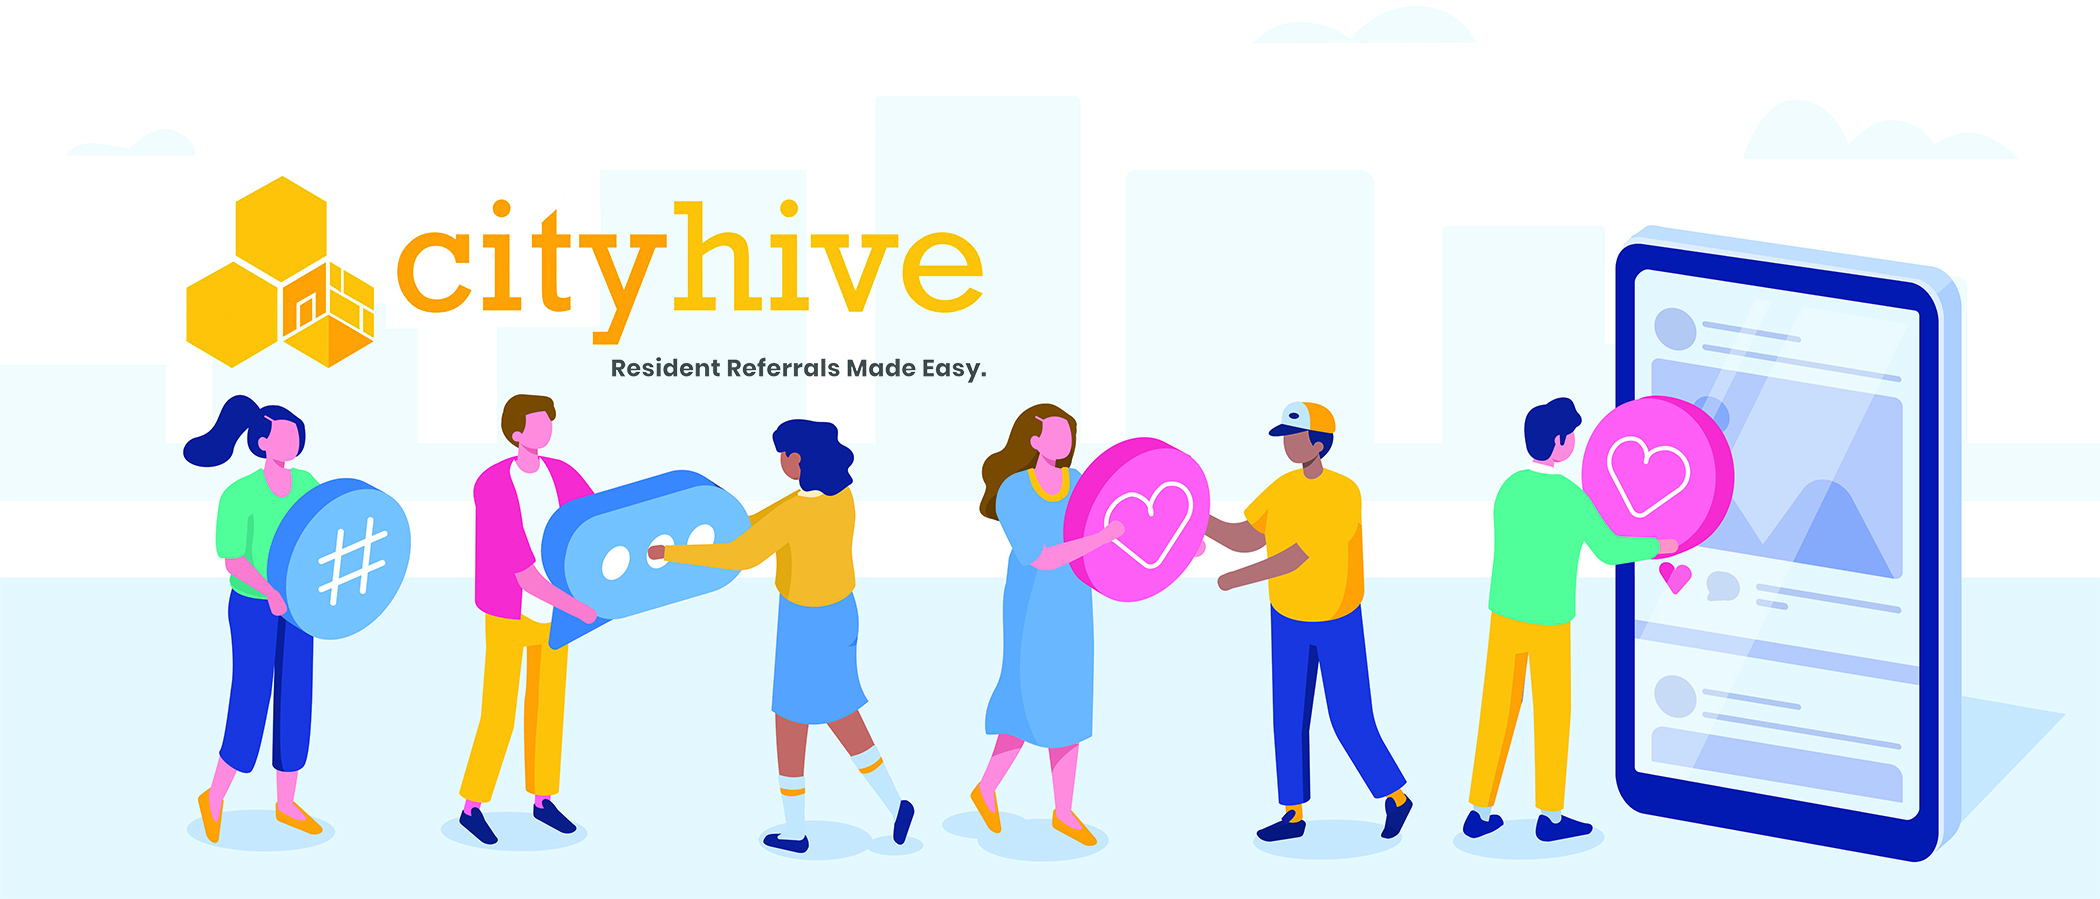 Cityhive Referral Marketing